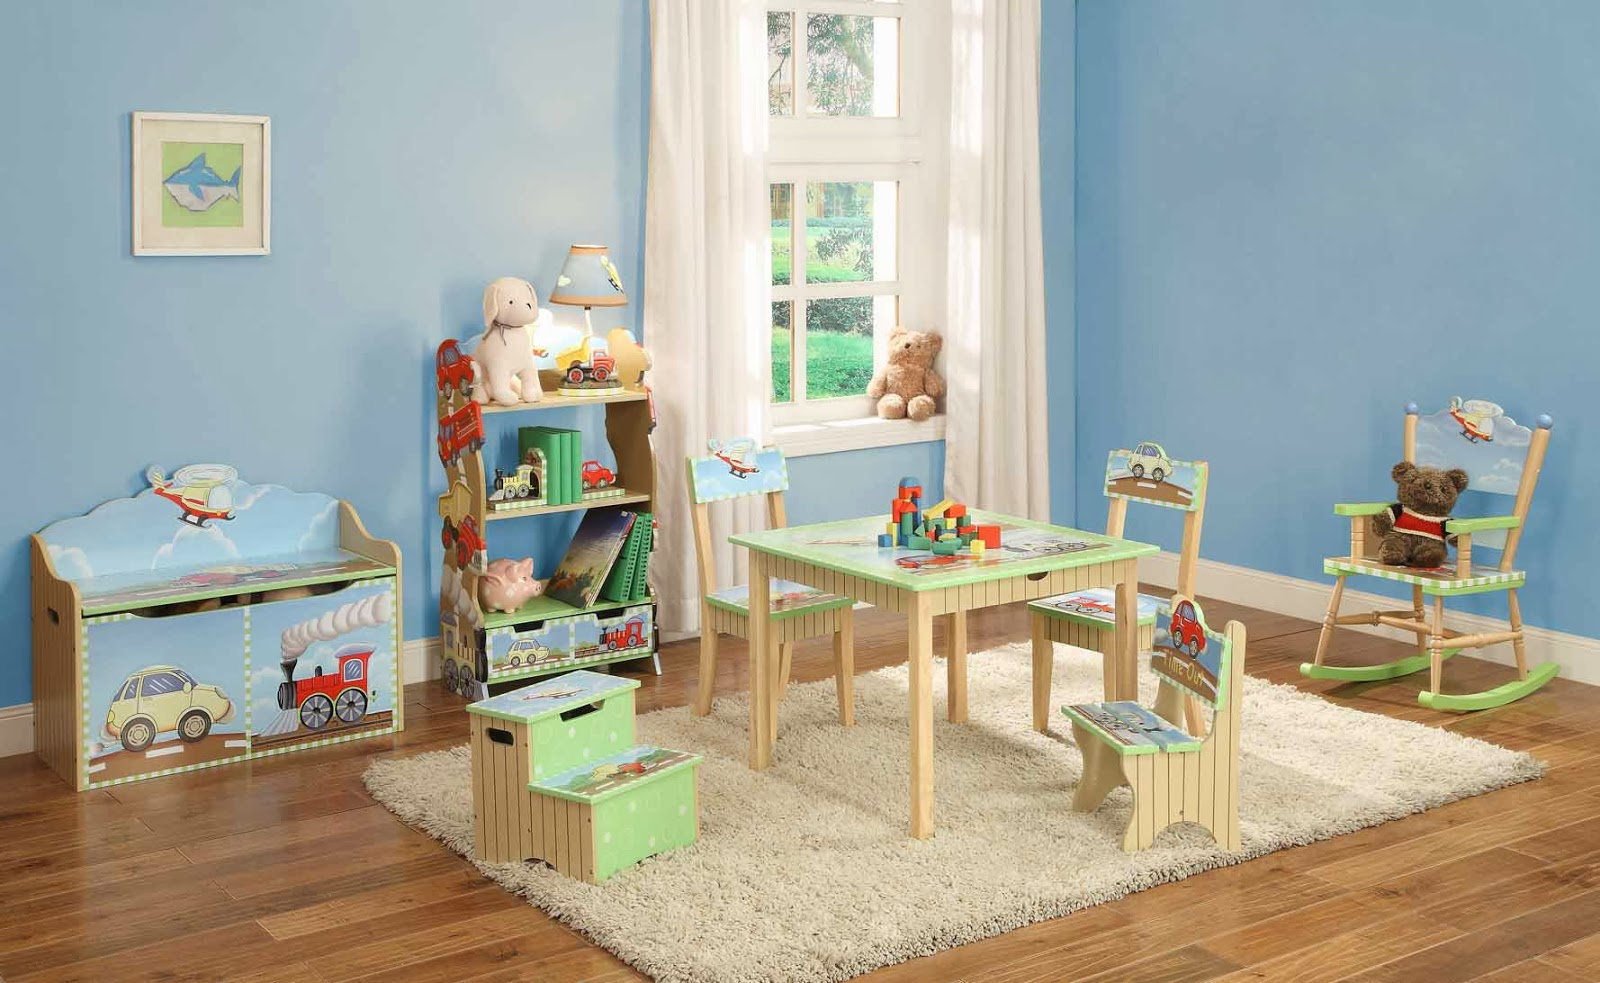 View Our KidKraft Teamson Wooden Toys Play Kitchens Dollhouse ...